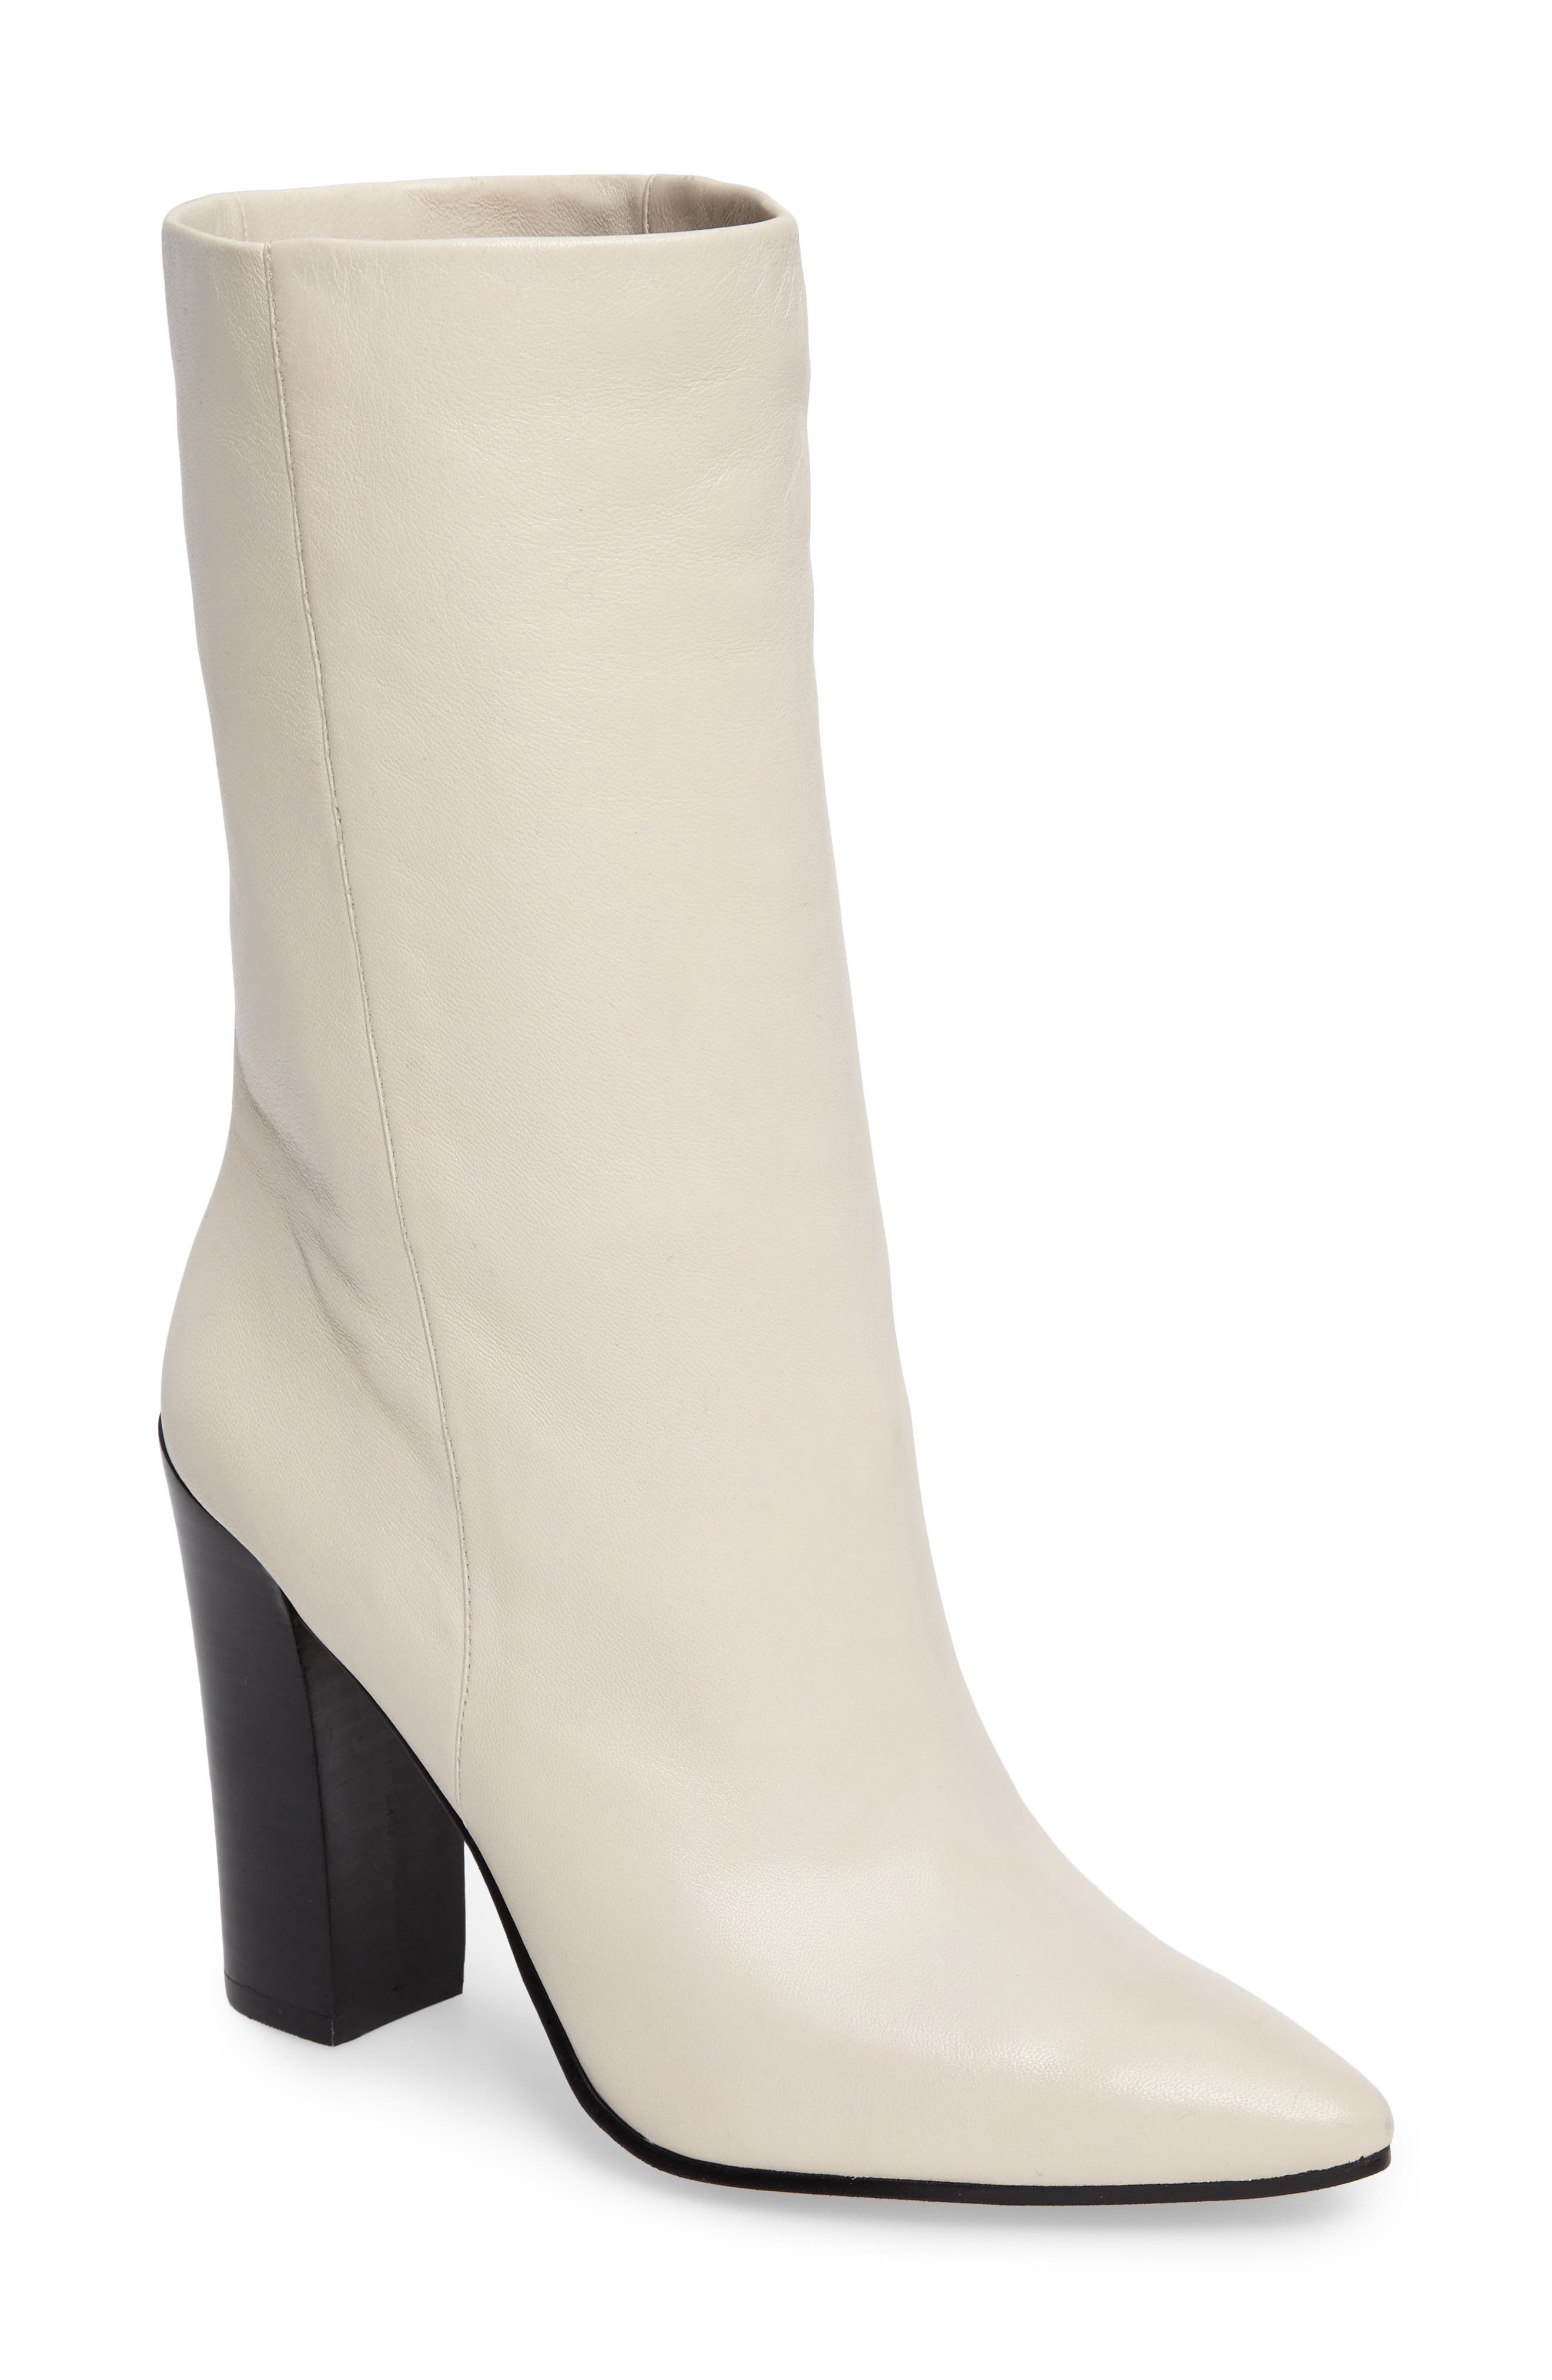 Alternate Image 1 Selected - Dolce Vita Ethan Pointy Toe Bootie (Women)